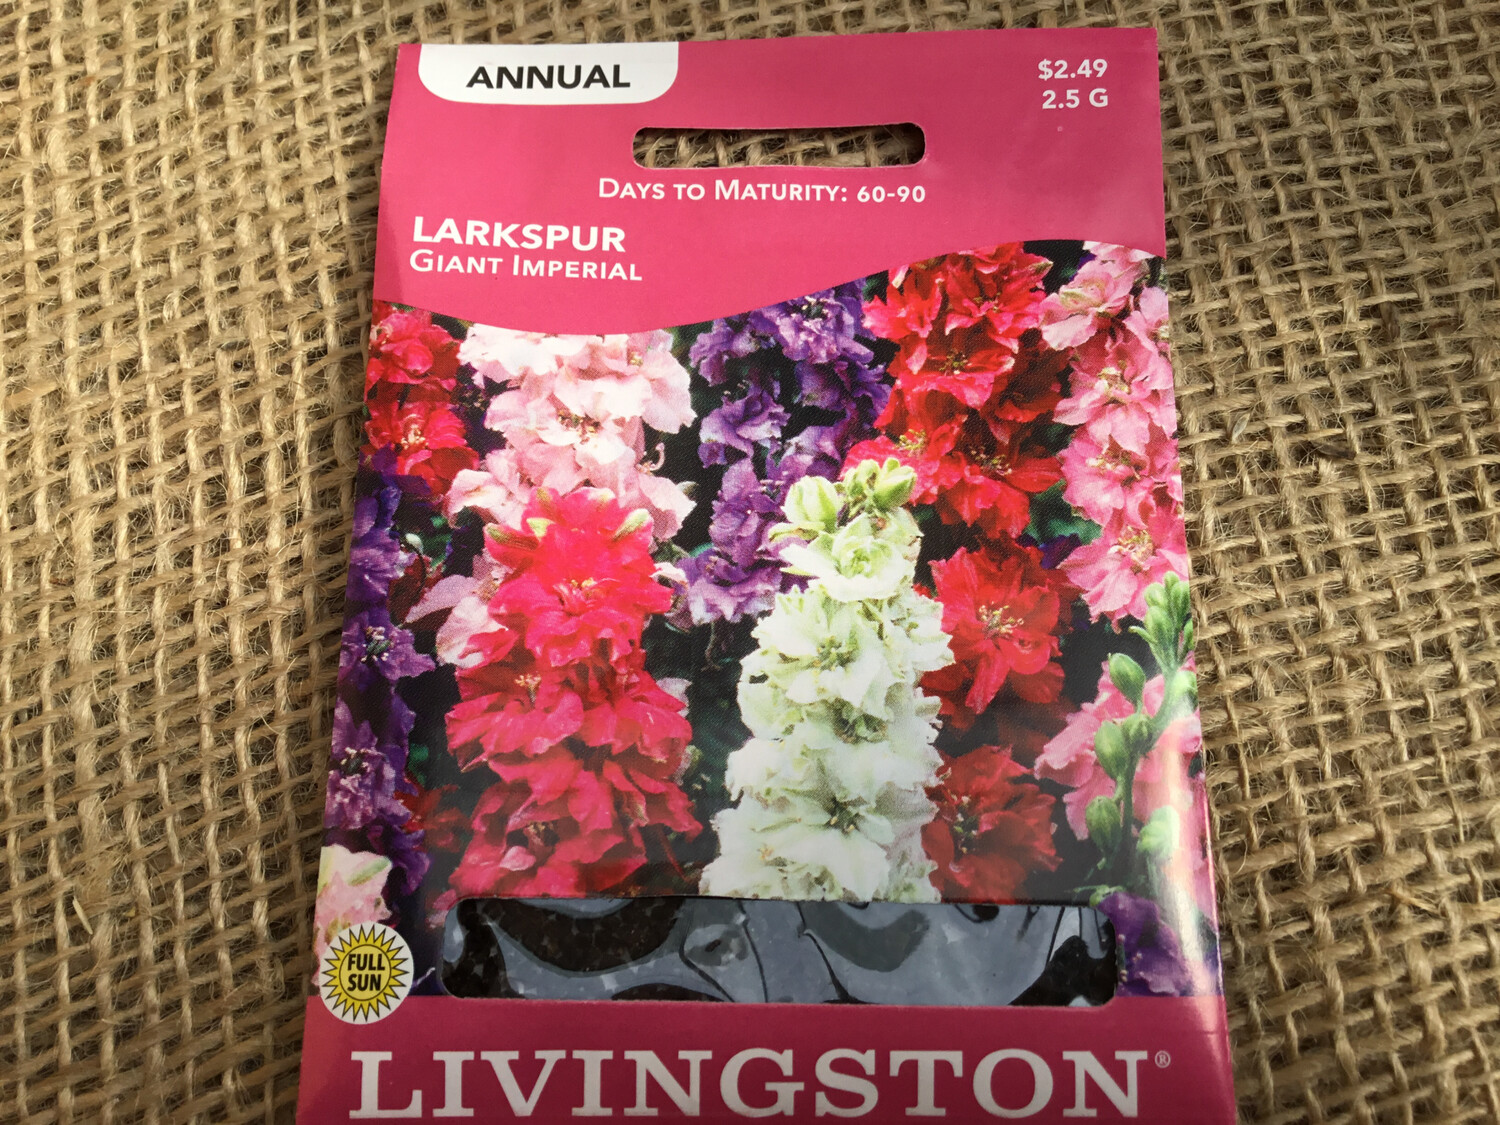 Larkspur Giant Imperial (Seed) $2.49